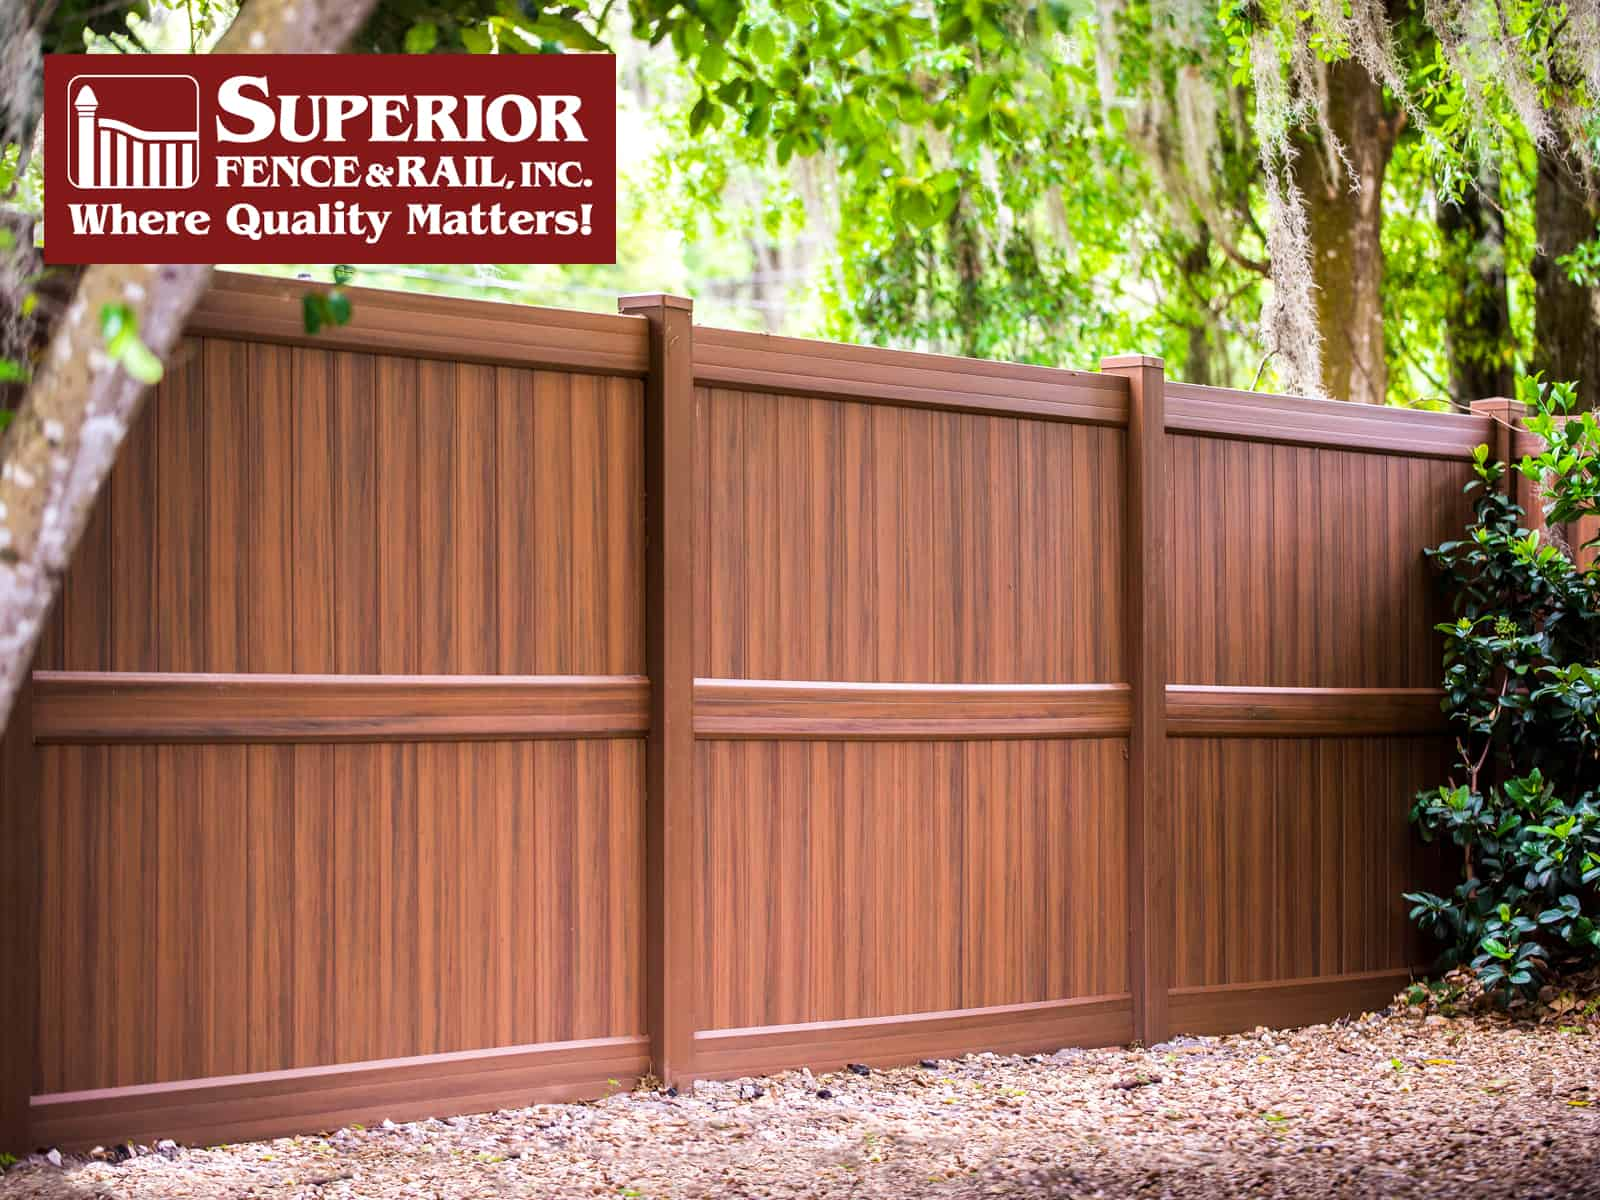 Mint HIll fence company contractor